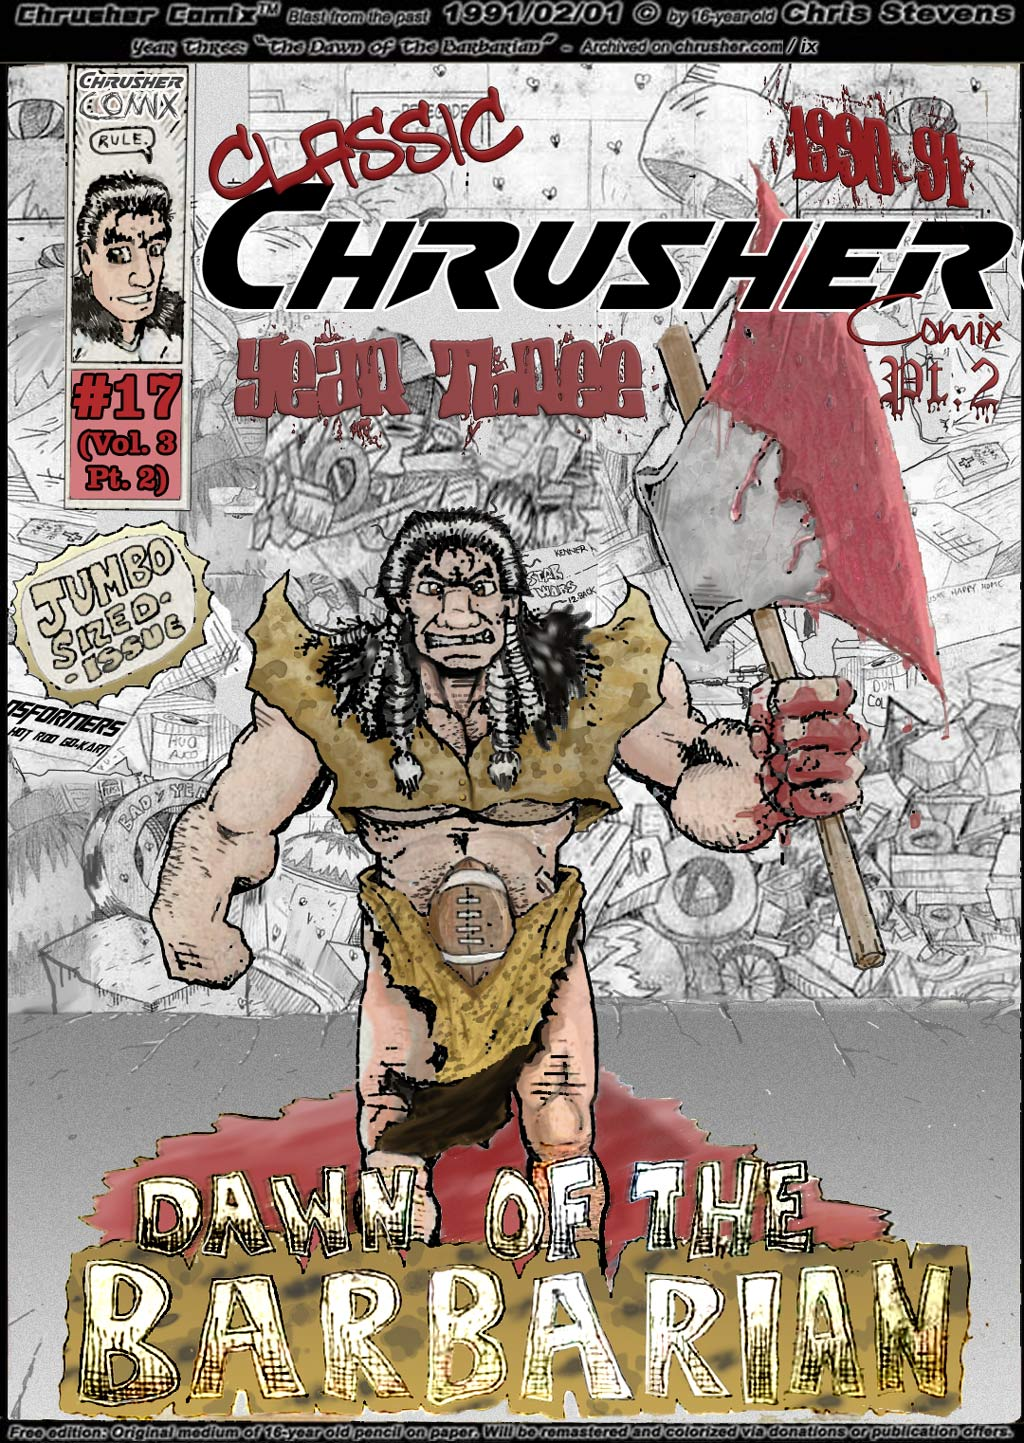 """Steven """"Barbarian"""" Howeird – The """"Spick-and-Span-Mad-Man"""" Hybrid Renegade Berserker 